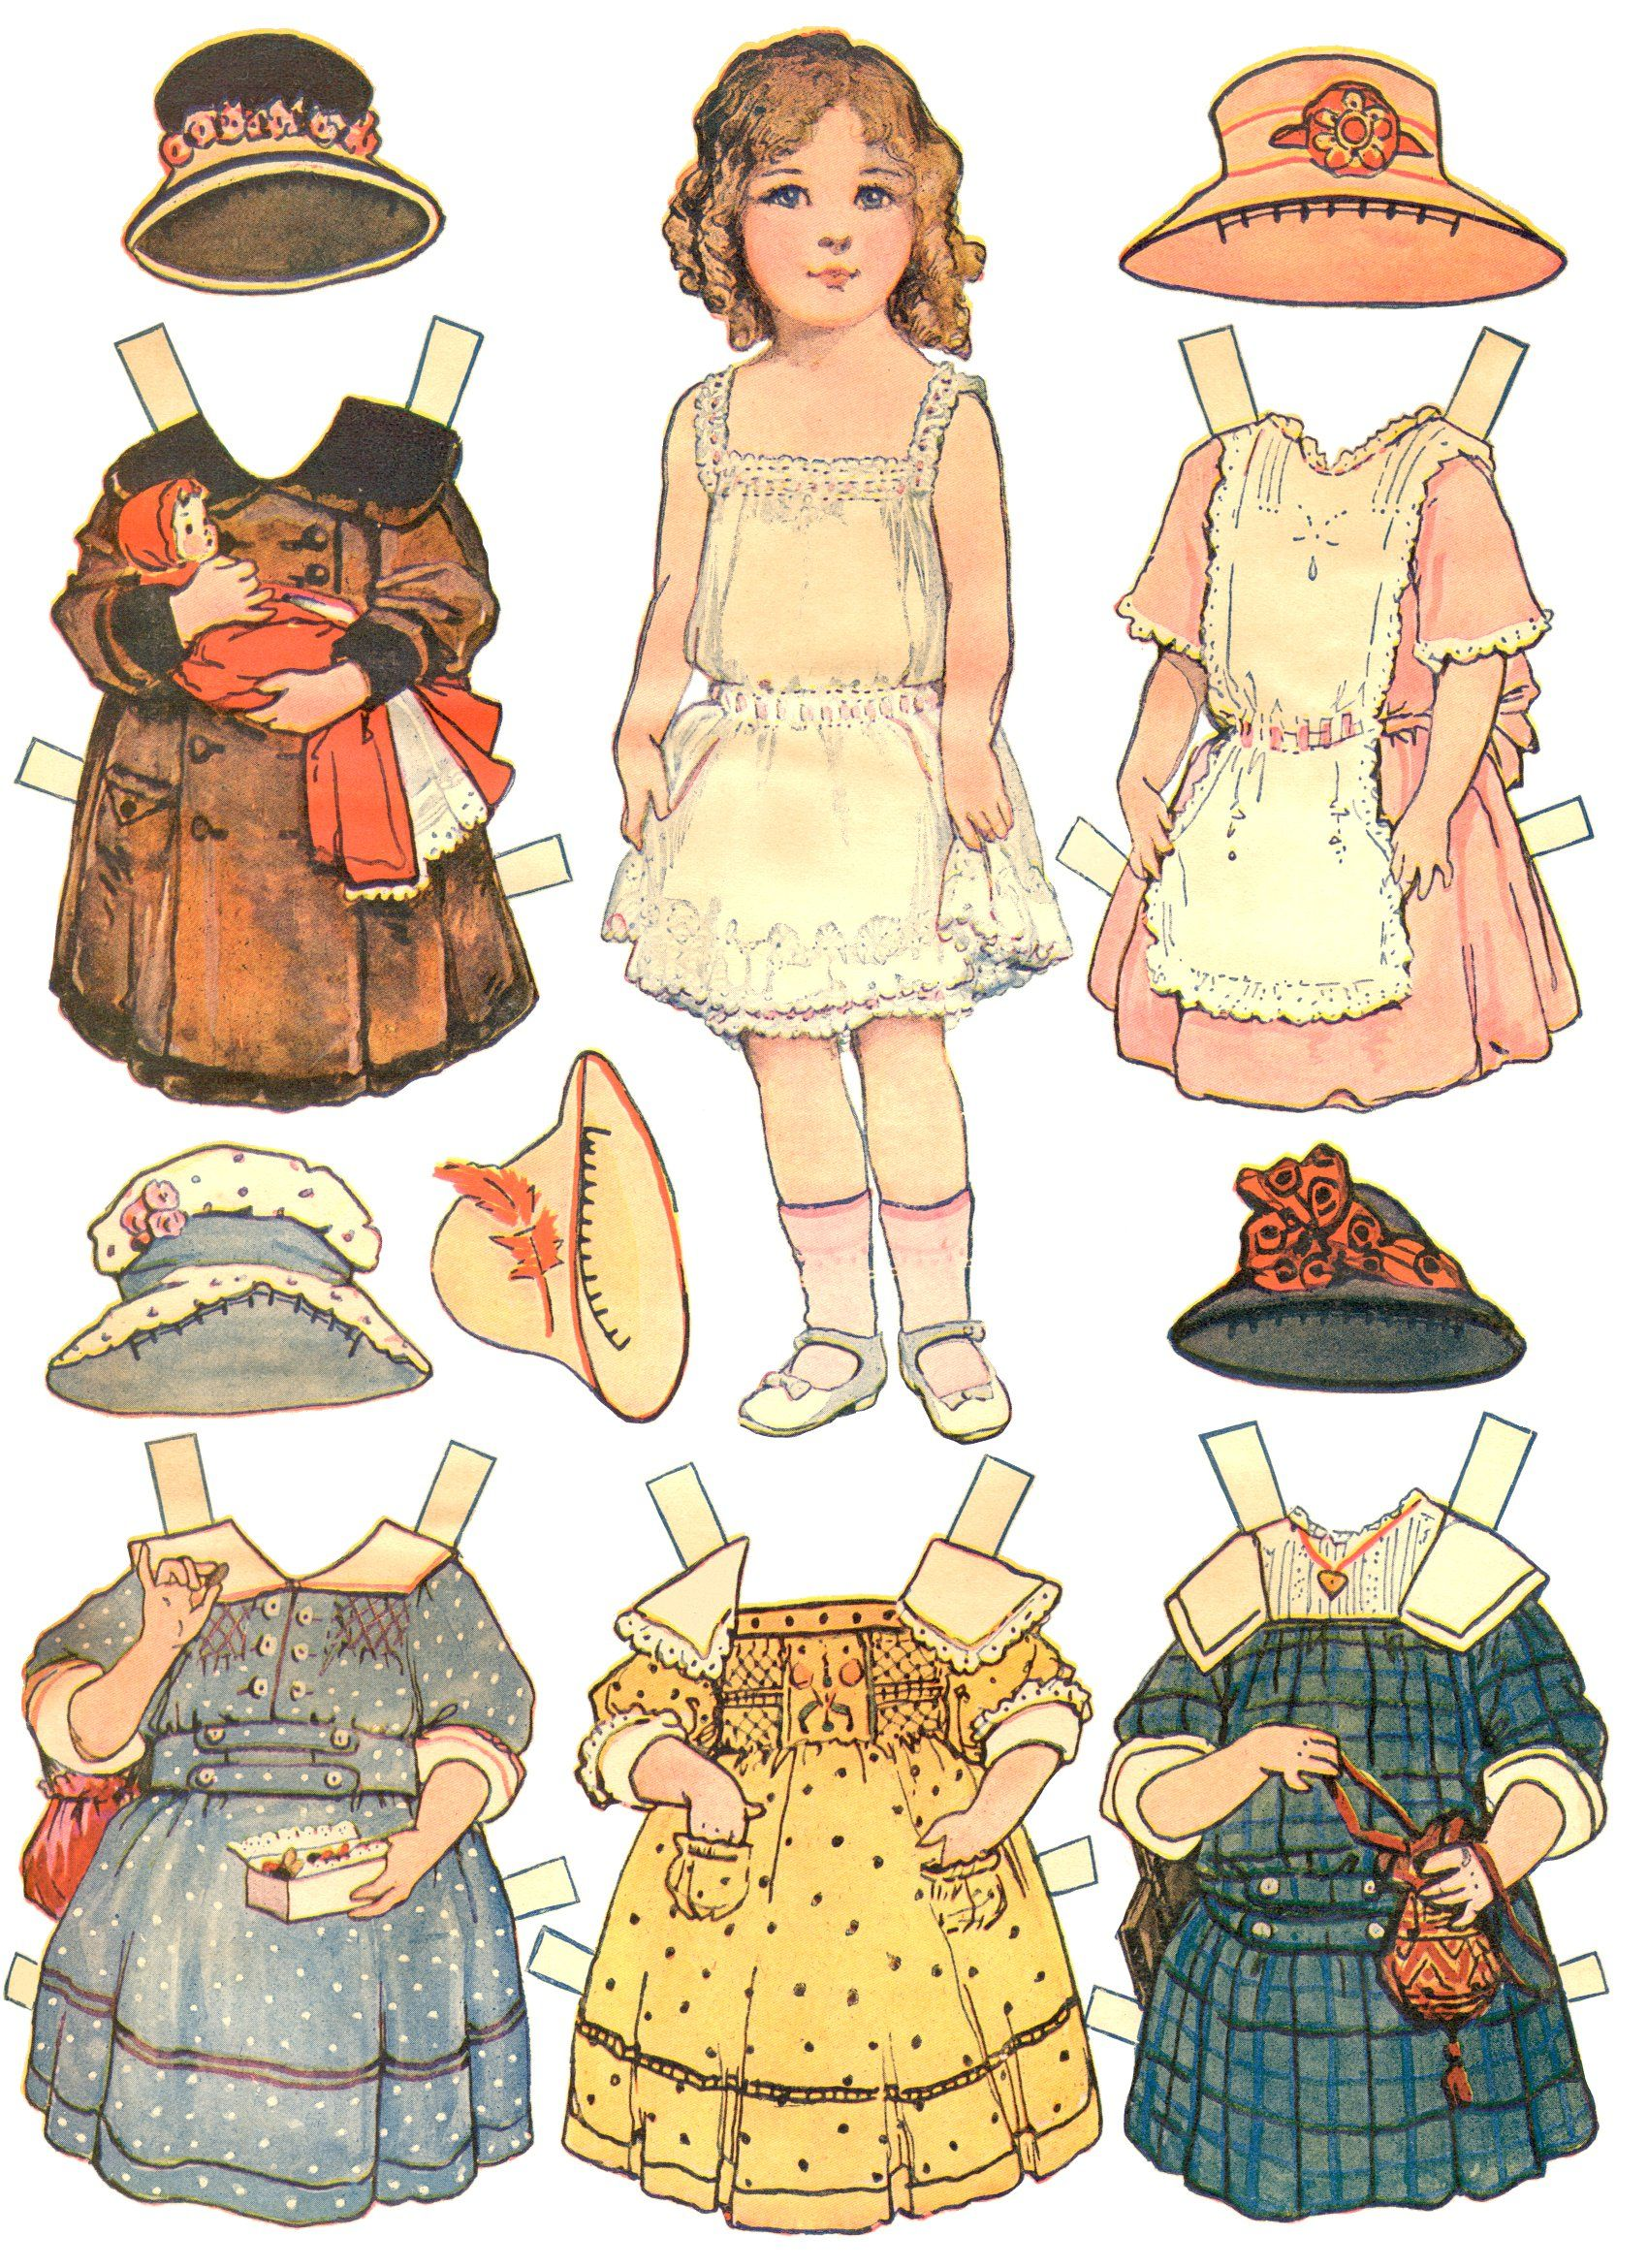 10+ images about Fun with Paper Dolls on Pinterest | Good ...